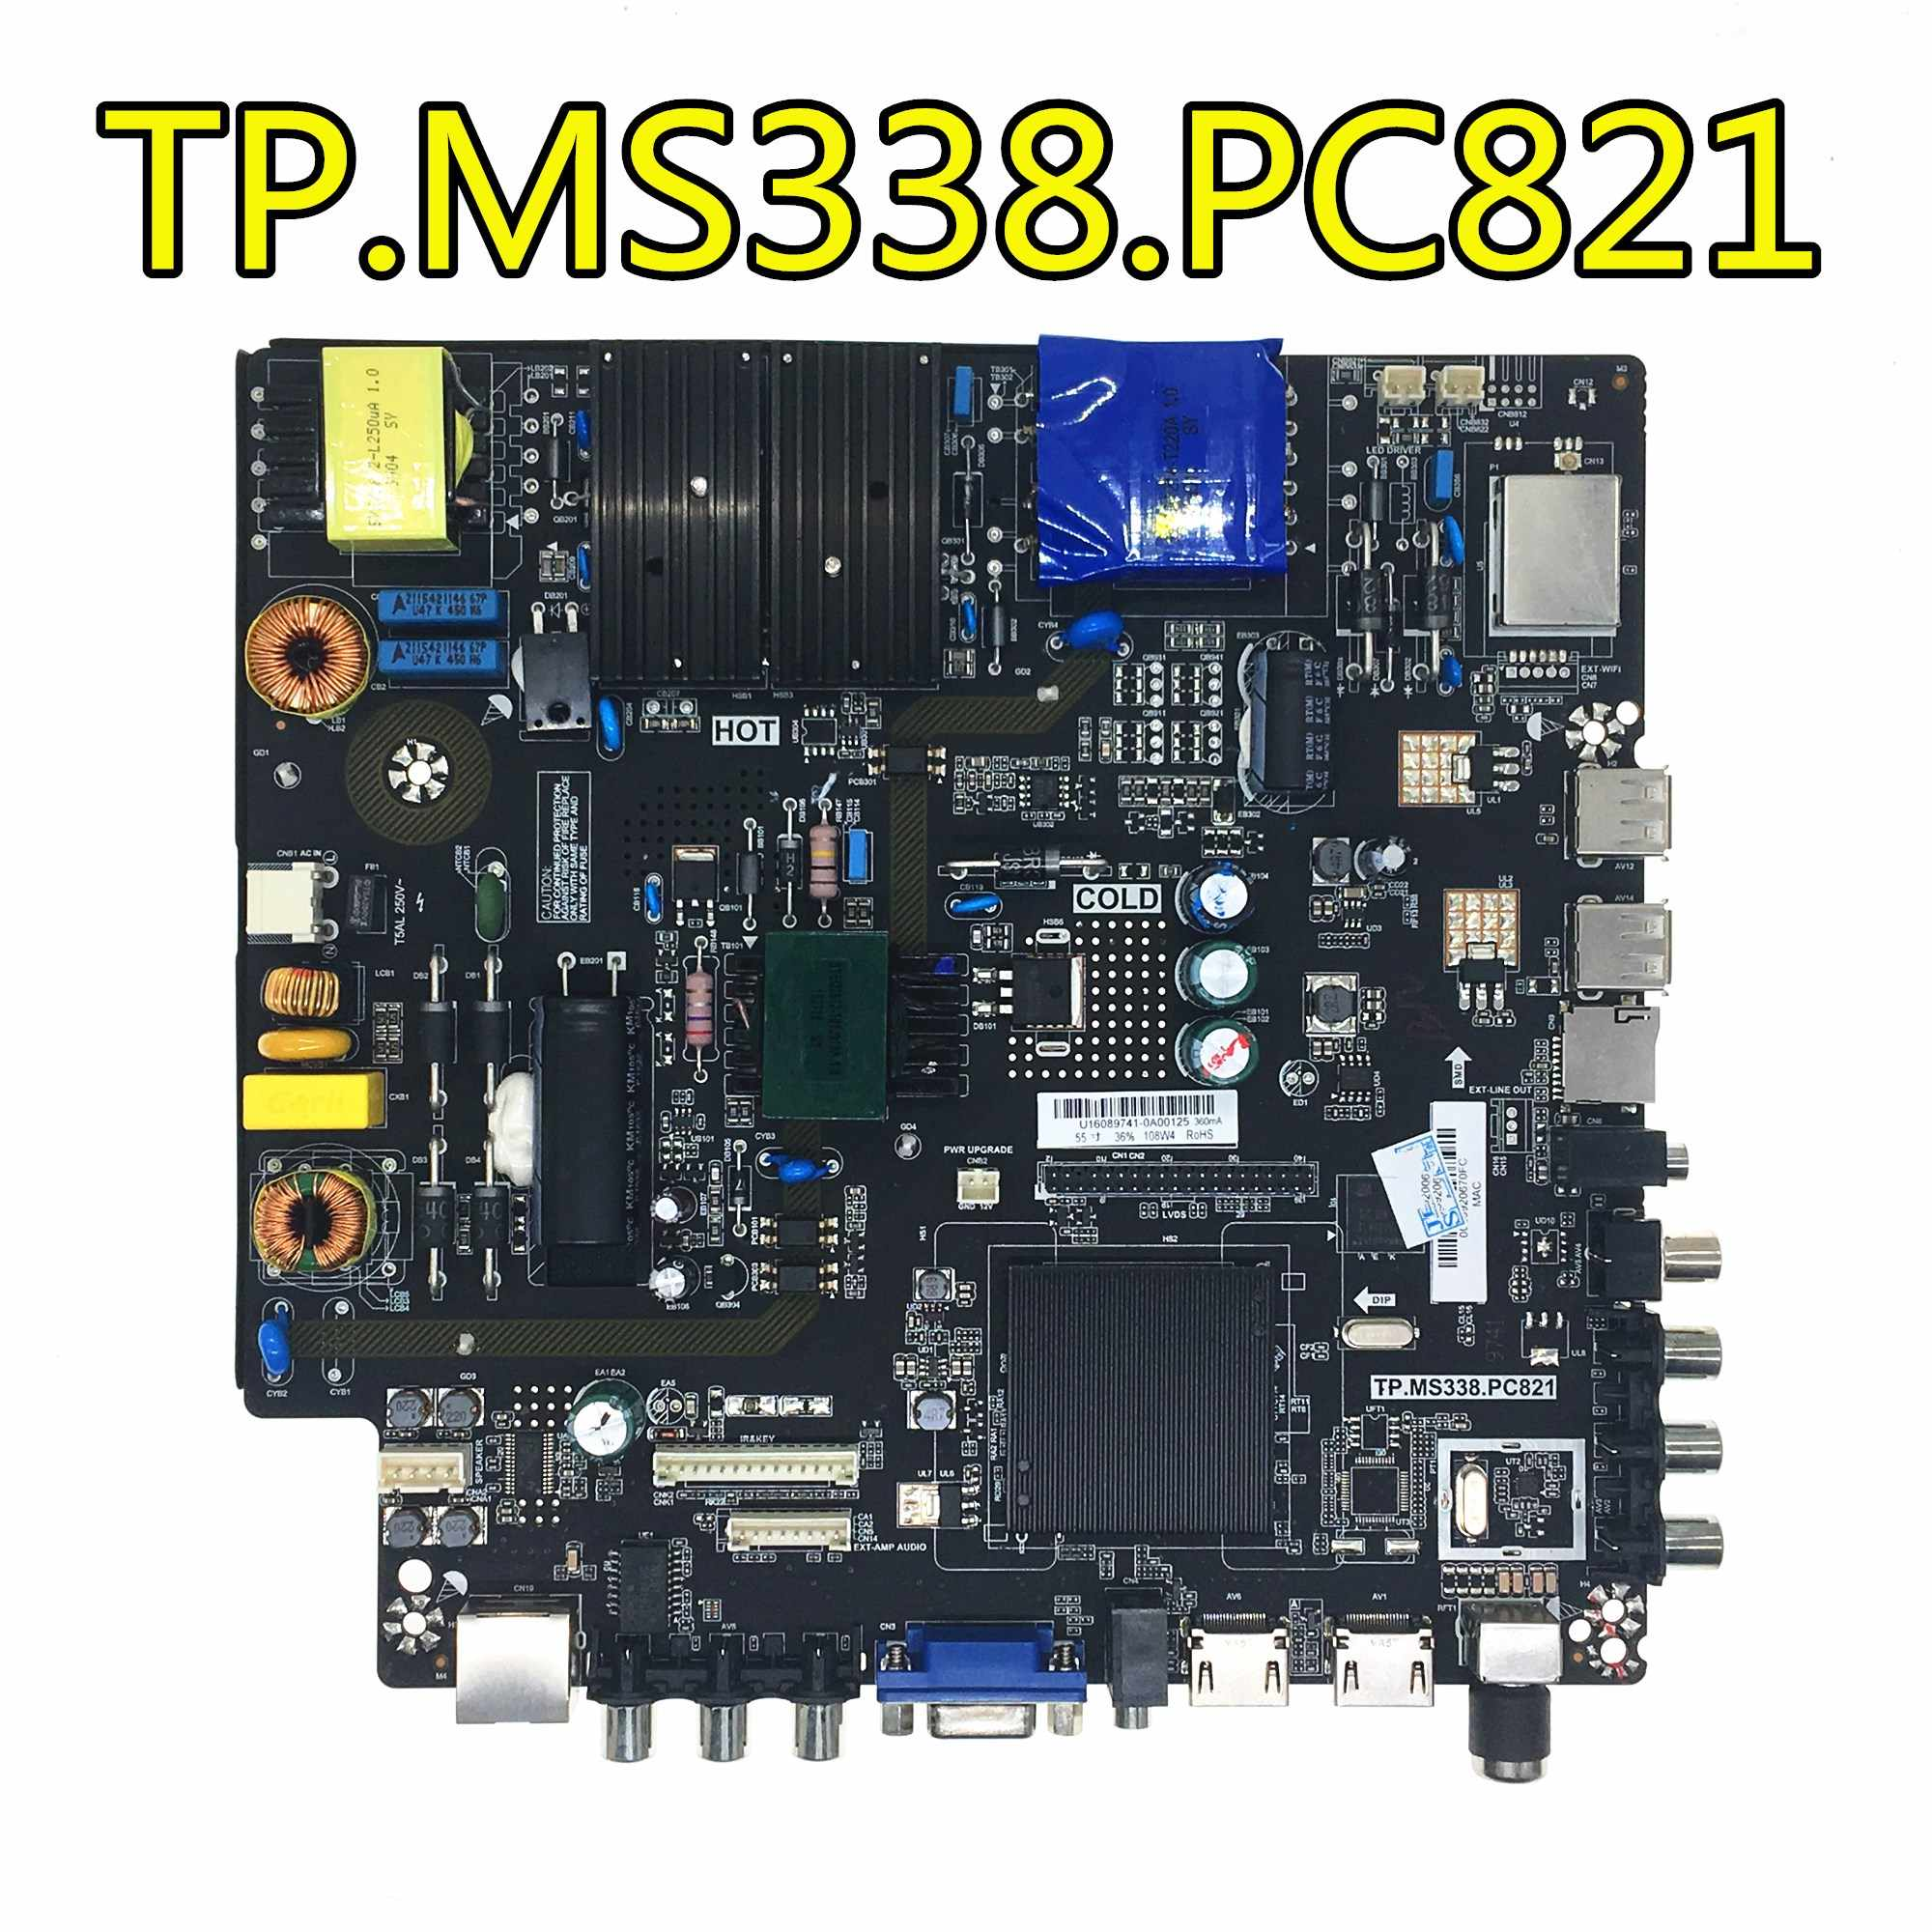 TP.MS338.PC821_Firmware